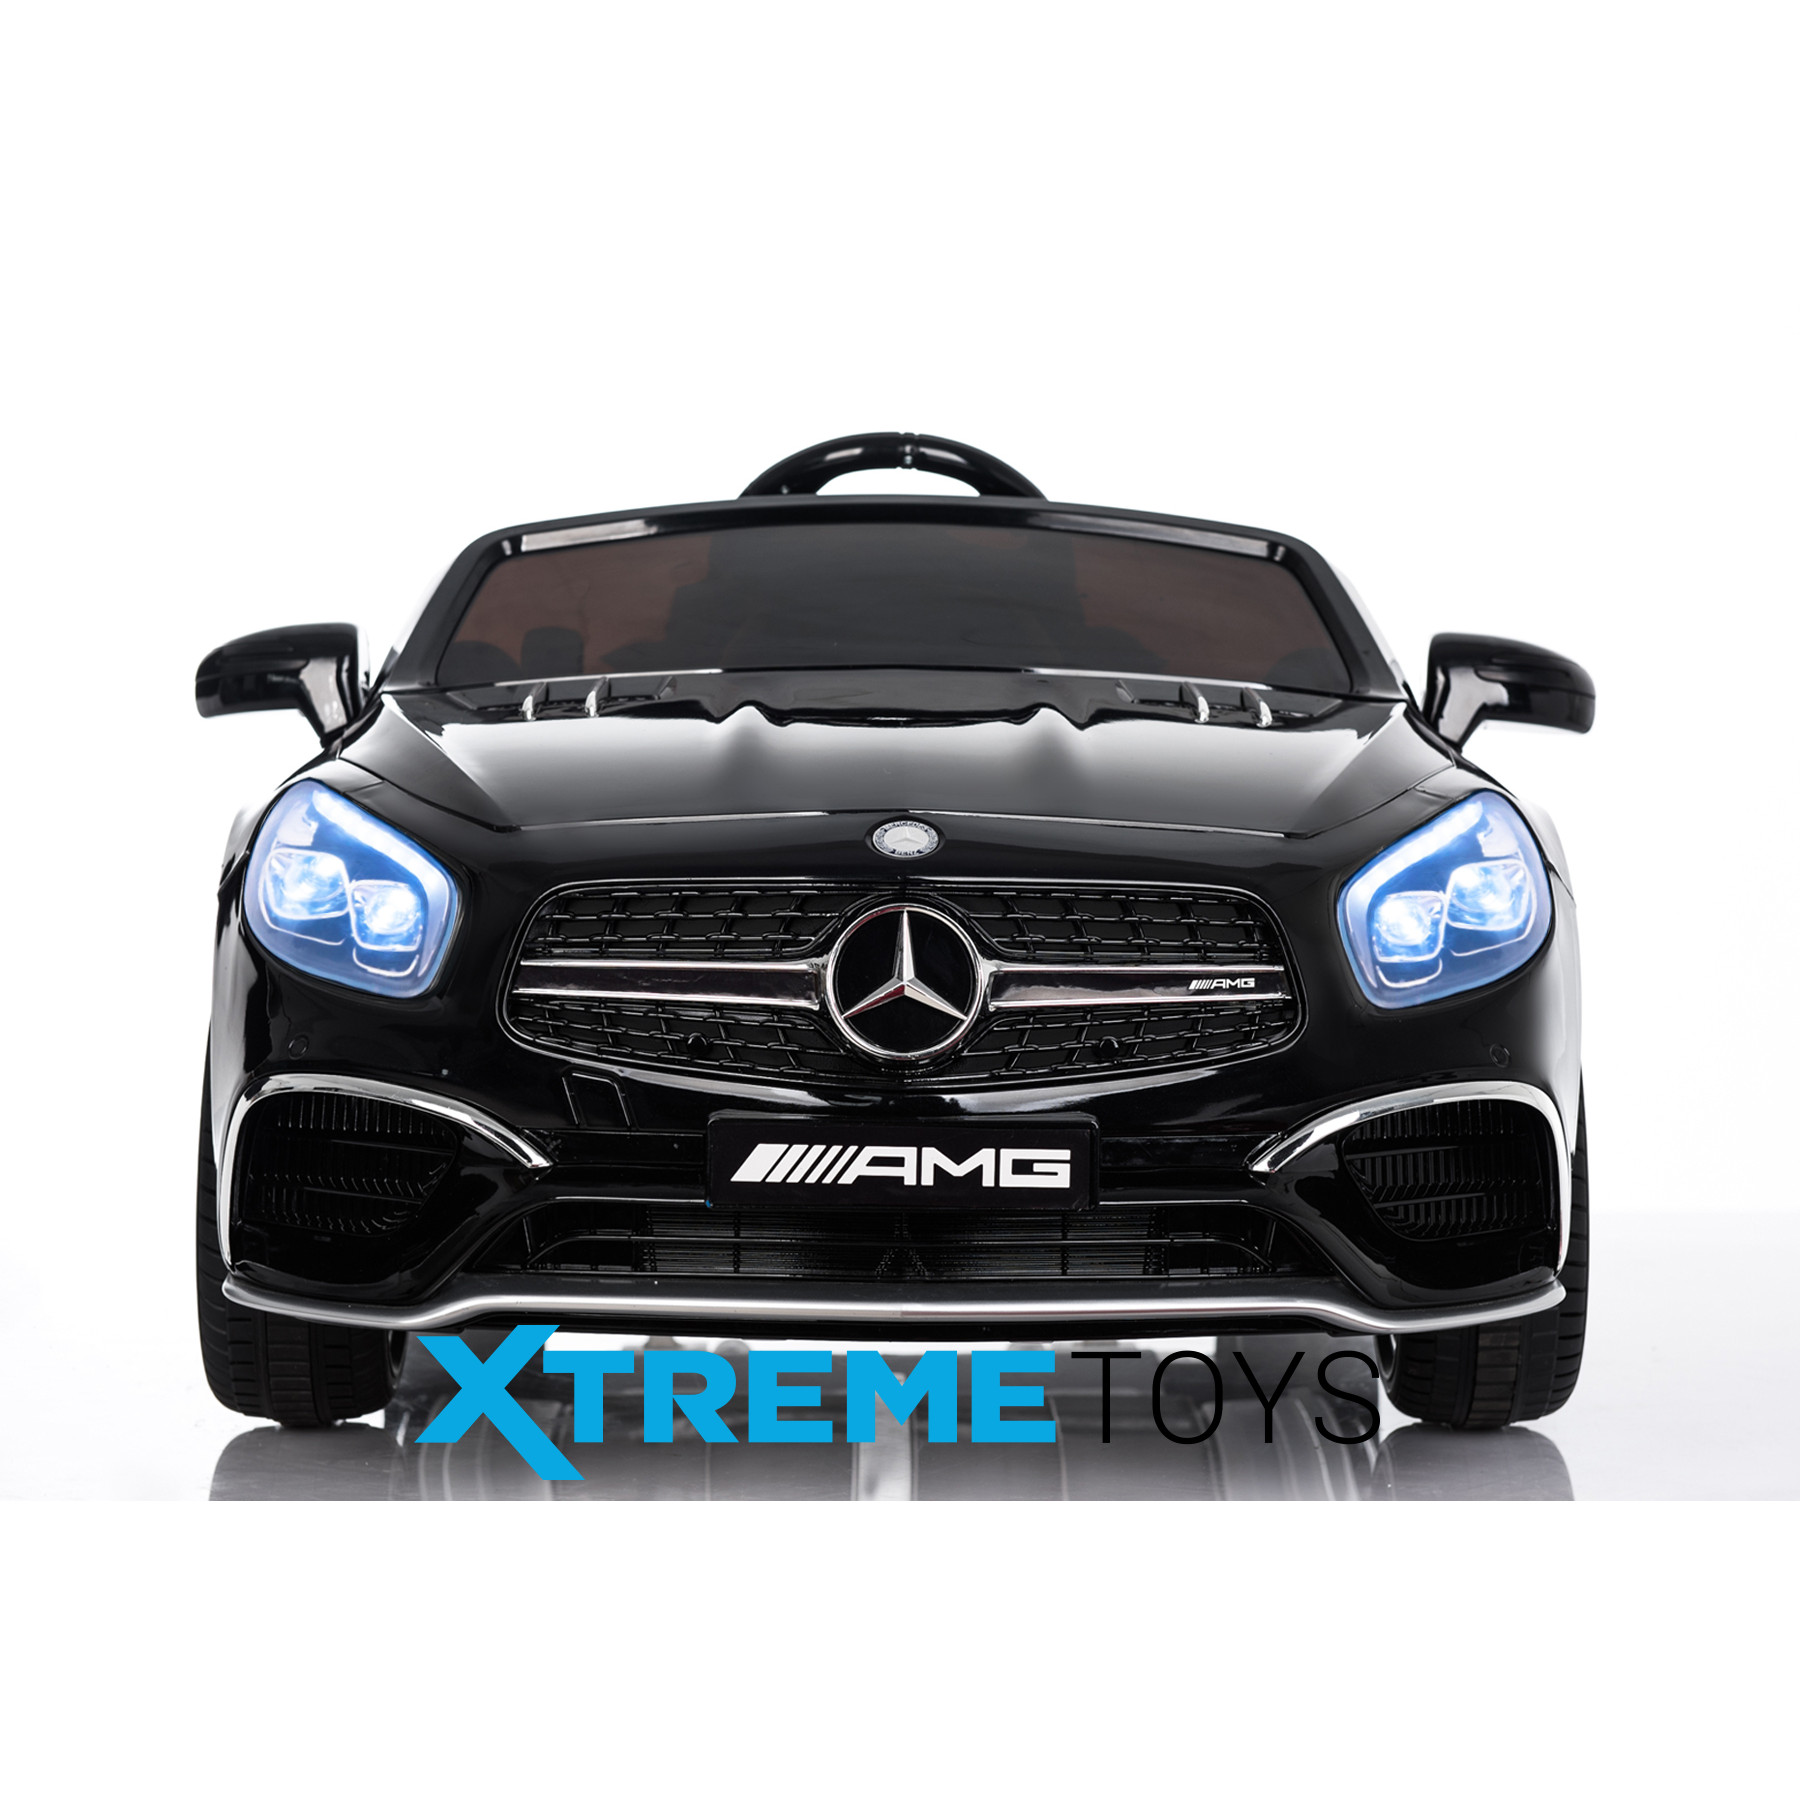 Xtreme 12v Licensed Mercedes-Benz SL65 AMG Coupe Ride on Car in Black